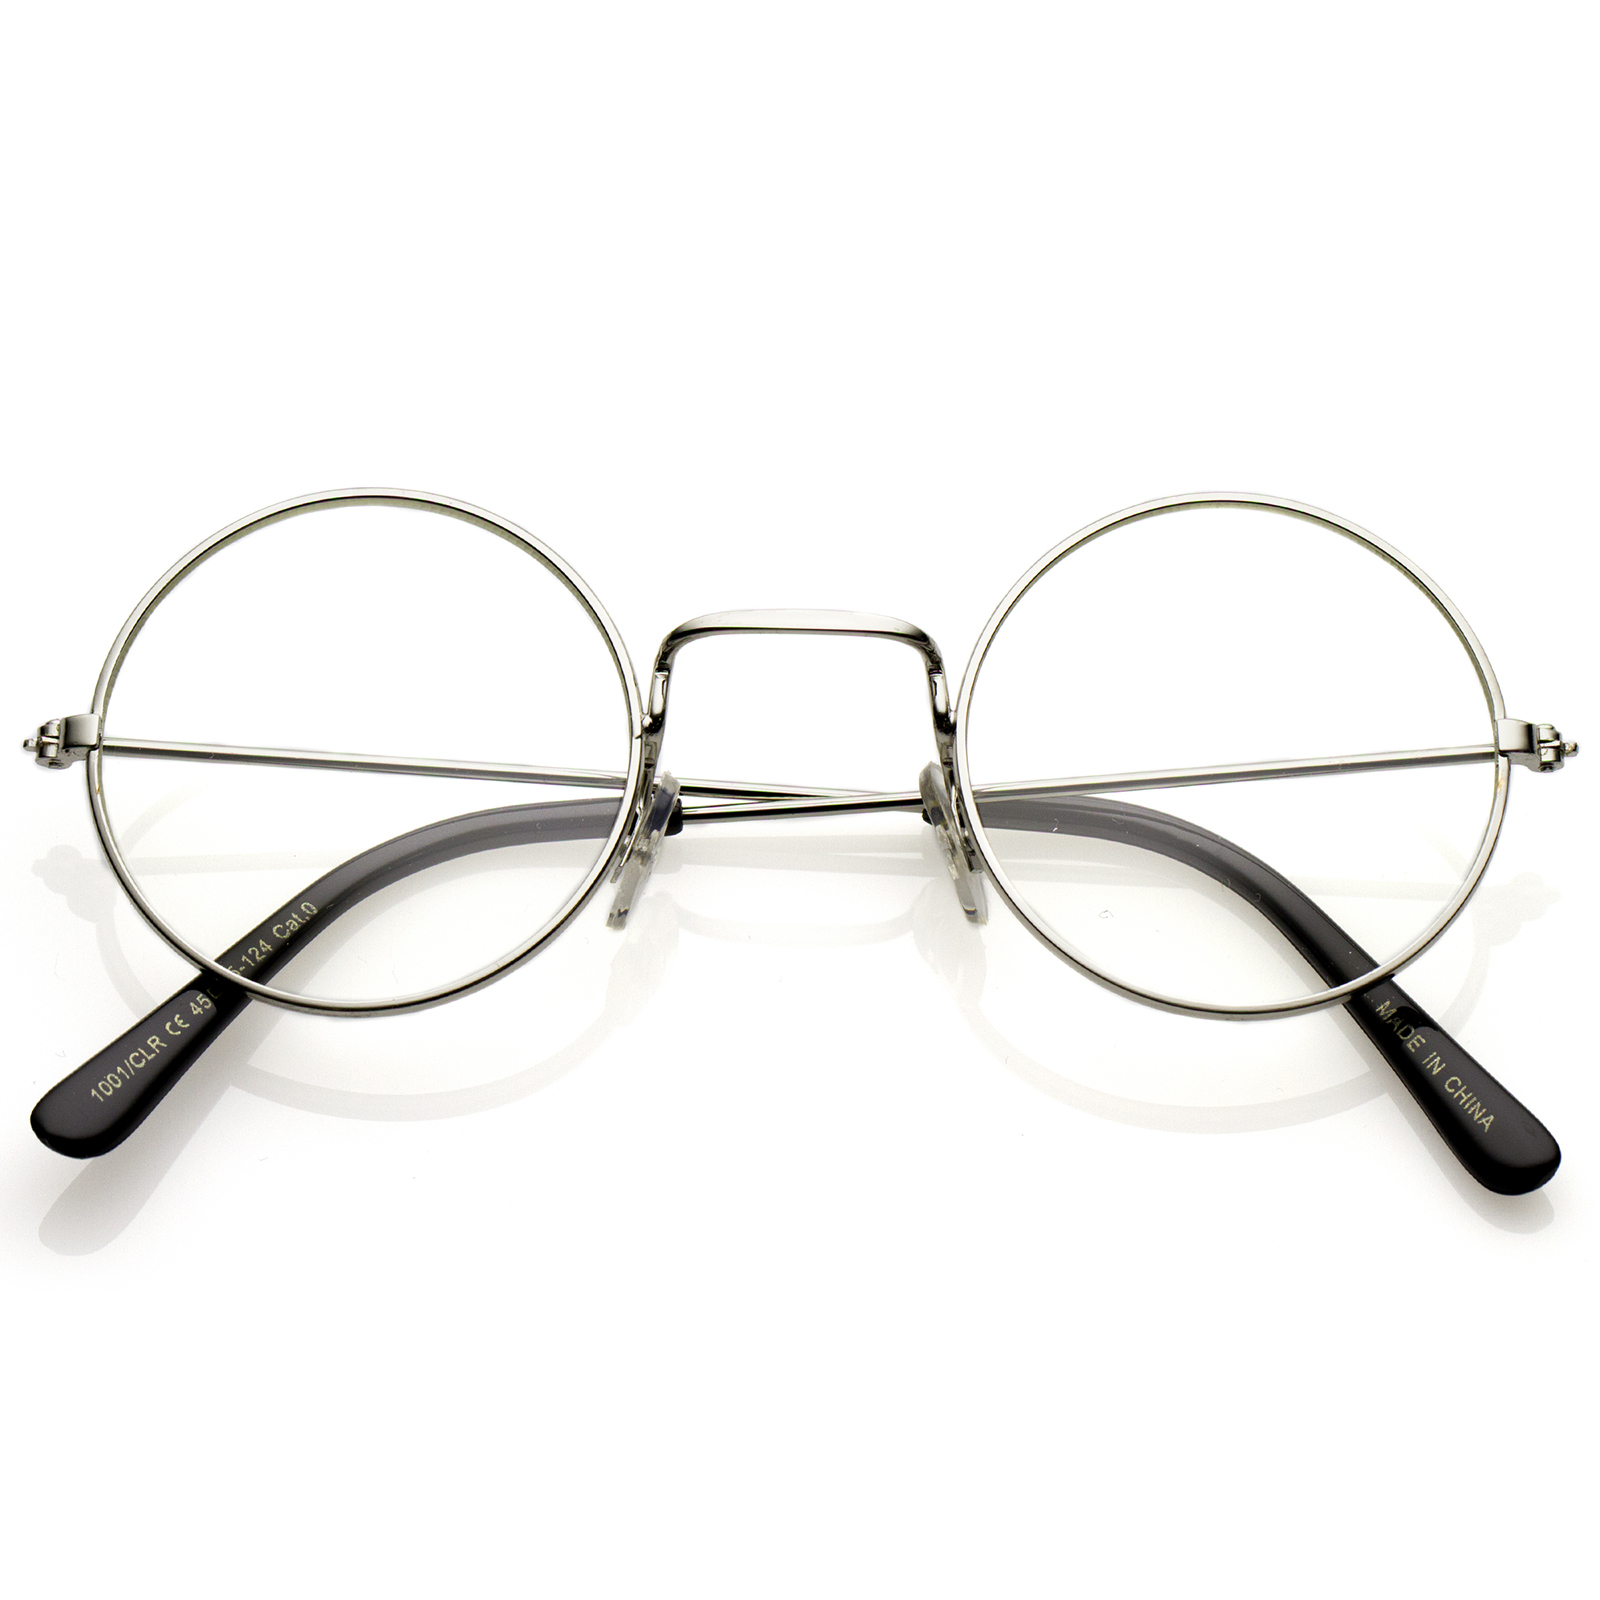 Eyeglasses Frame Temples : sunglassLA Classic Small Metal Frame Slim Temples Clear ...